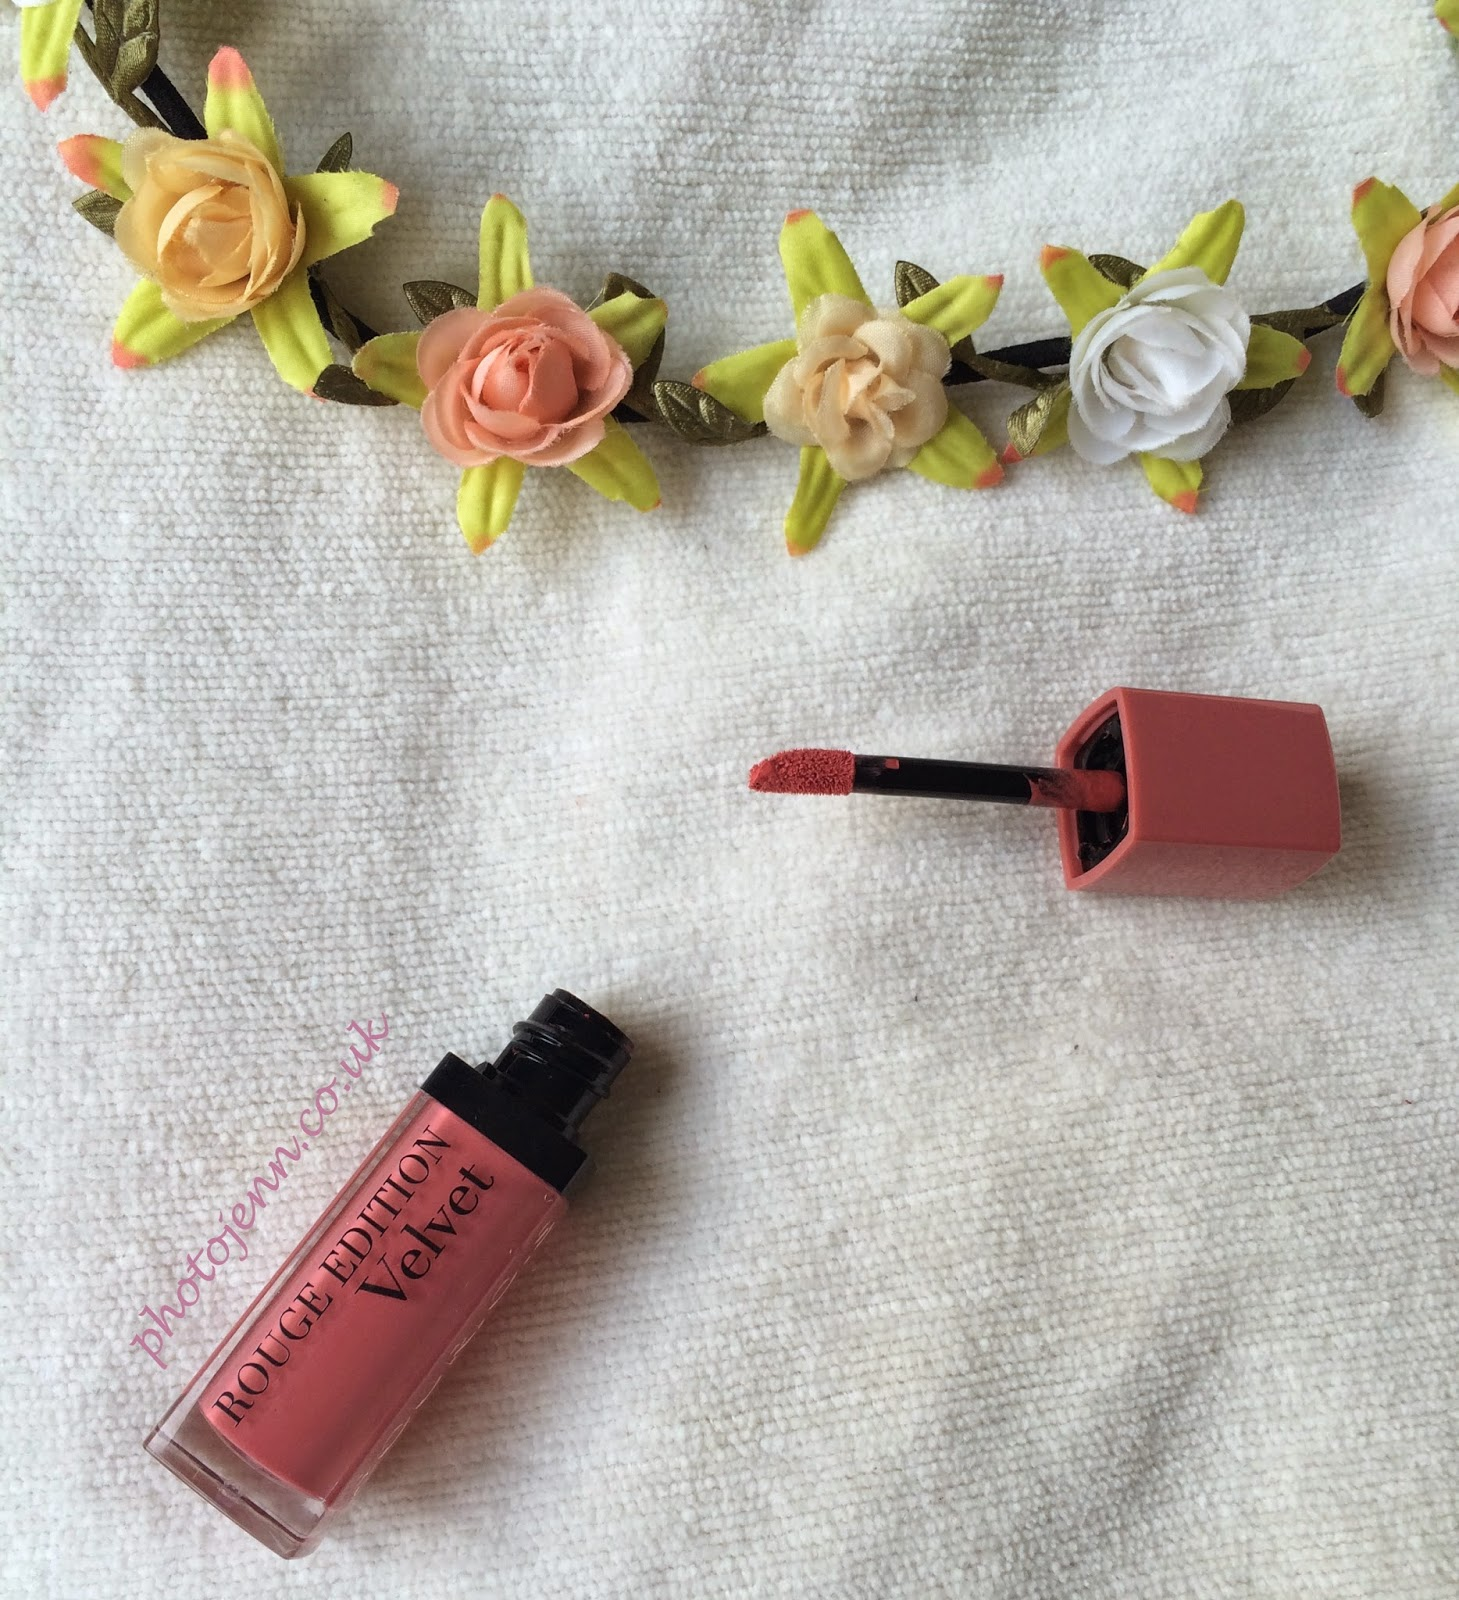 new-bourjois-rouge-edition-velvet--shade-happy-nude-year-2014